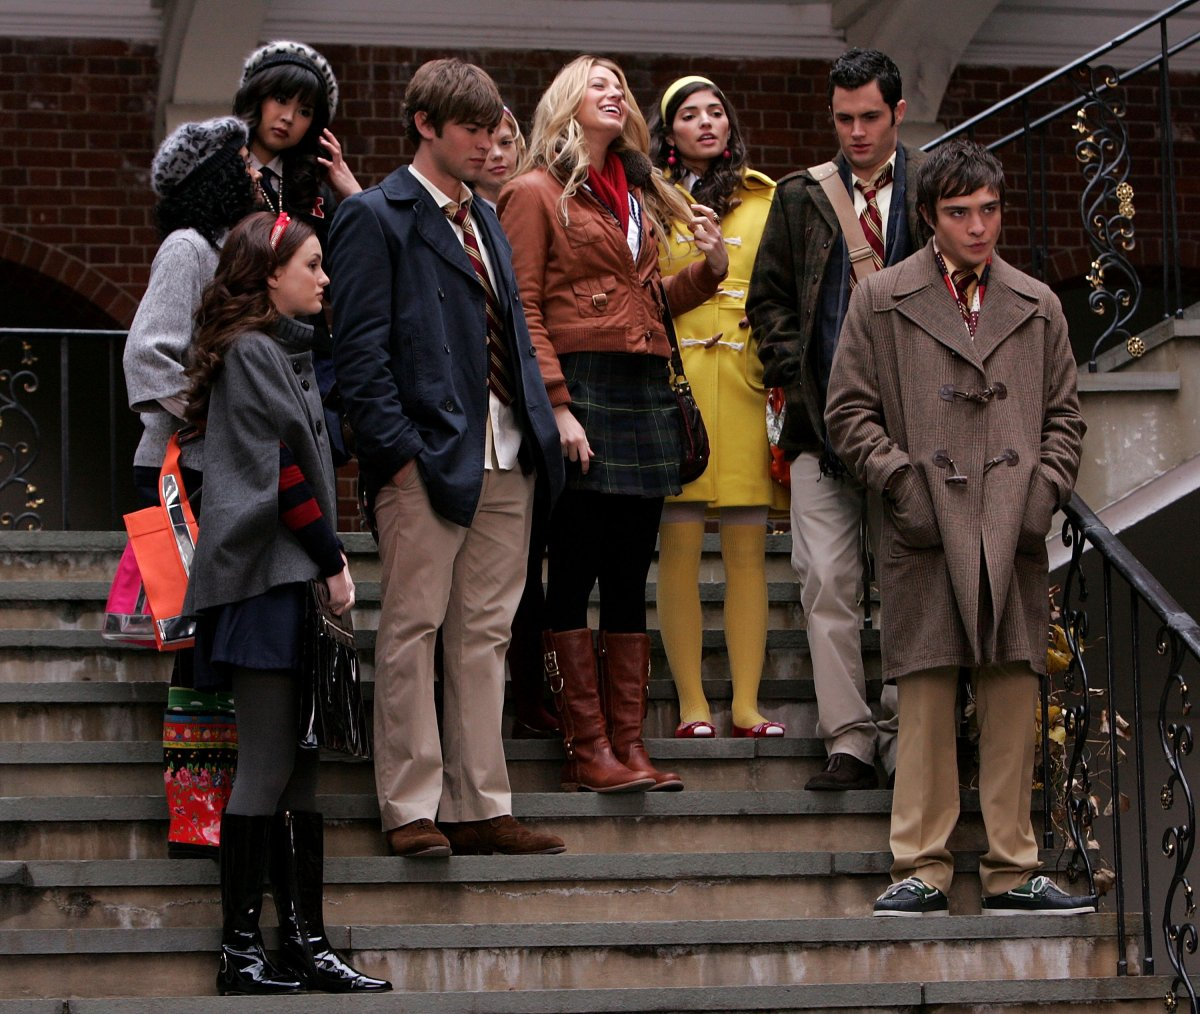 Leighton Meester, Chace Crawford, Blake Lively, Penn Badgley and Ed Westwick on location for 'Gossip Girl' in New York City on Nov. 27, 2007  .